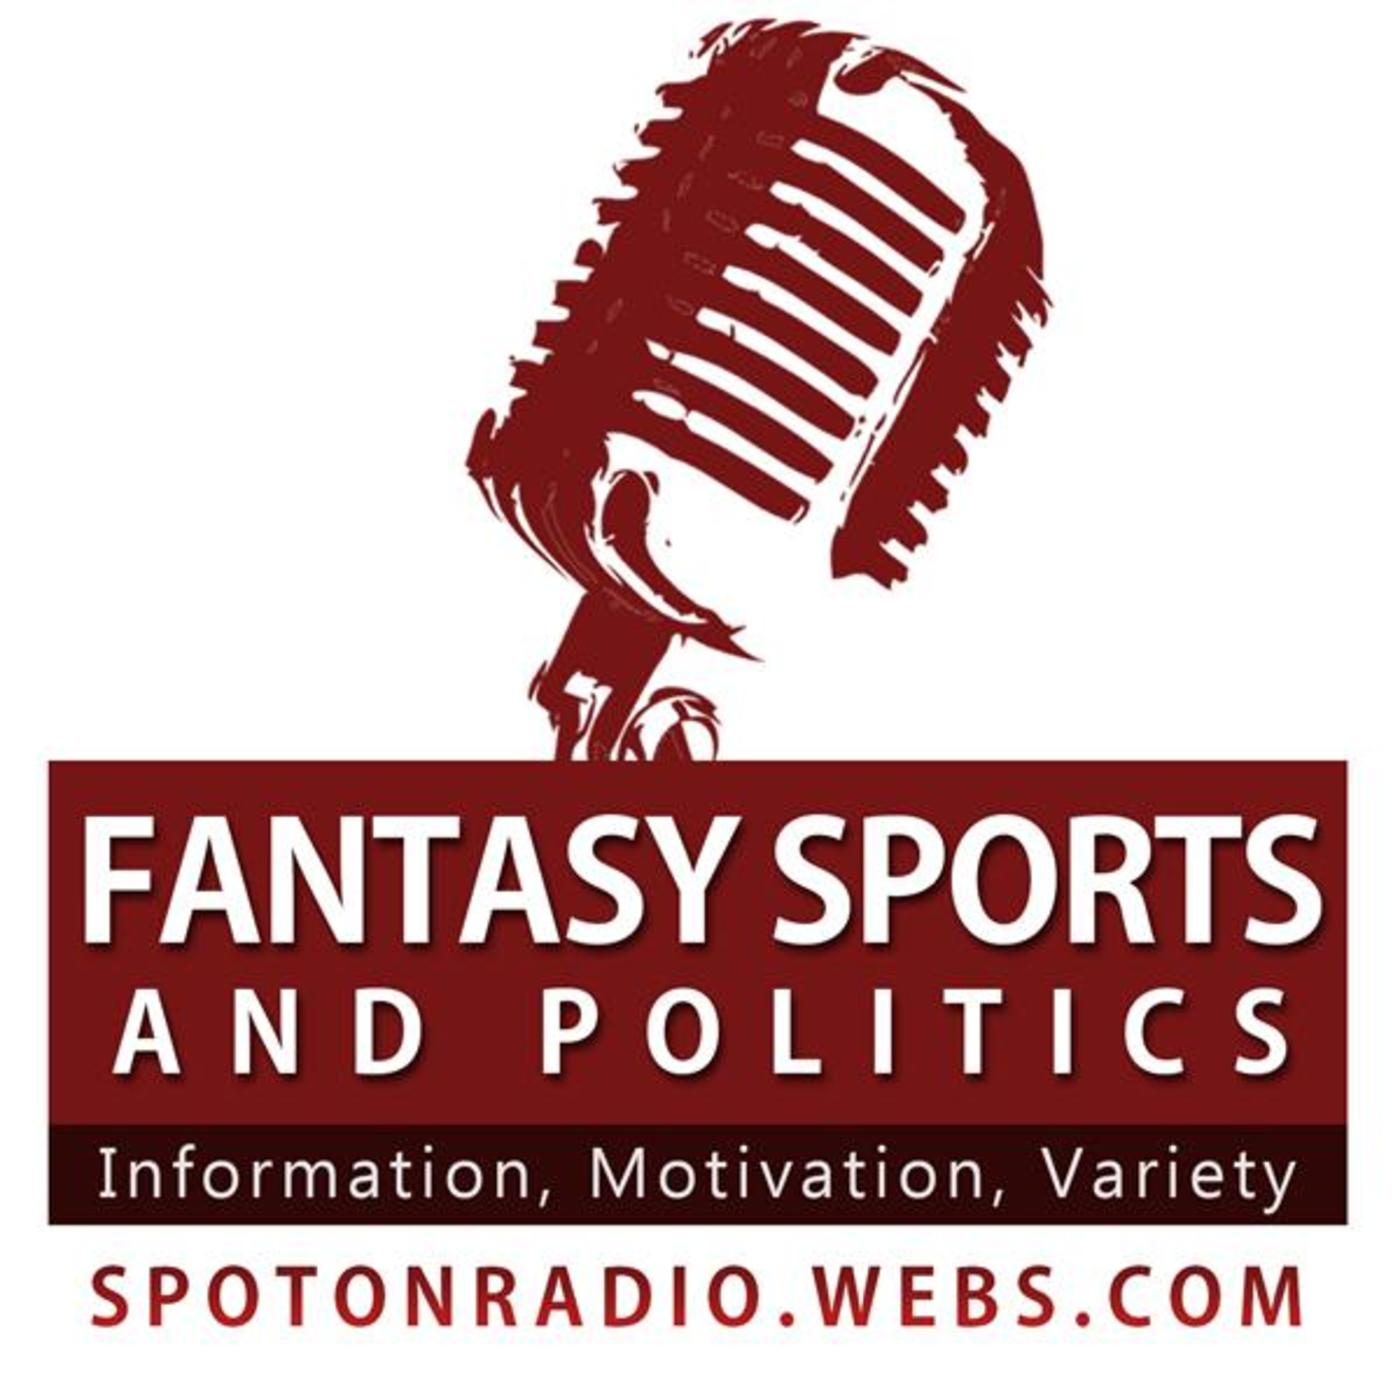 Fantasy Sports and Politics